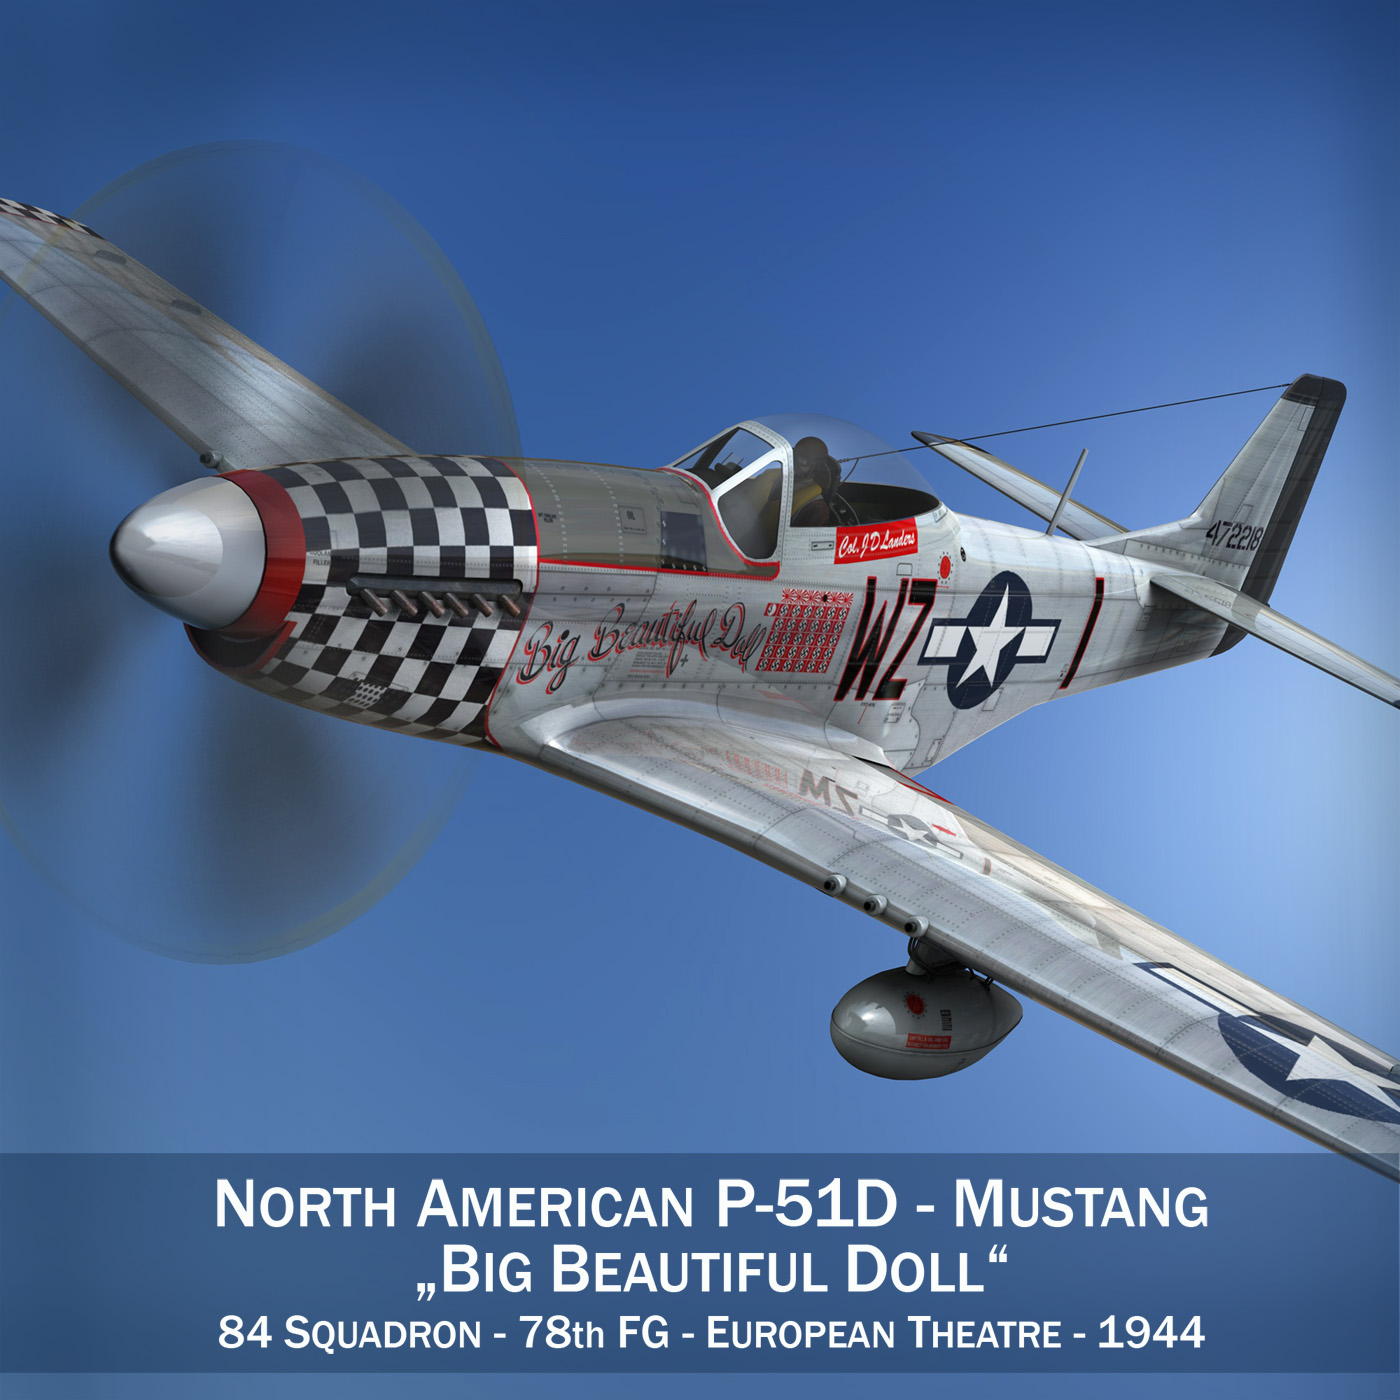 north american p-51d mustang – big beautiful doll 3d model fbx c4d lwo obj 282552